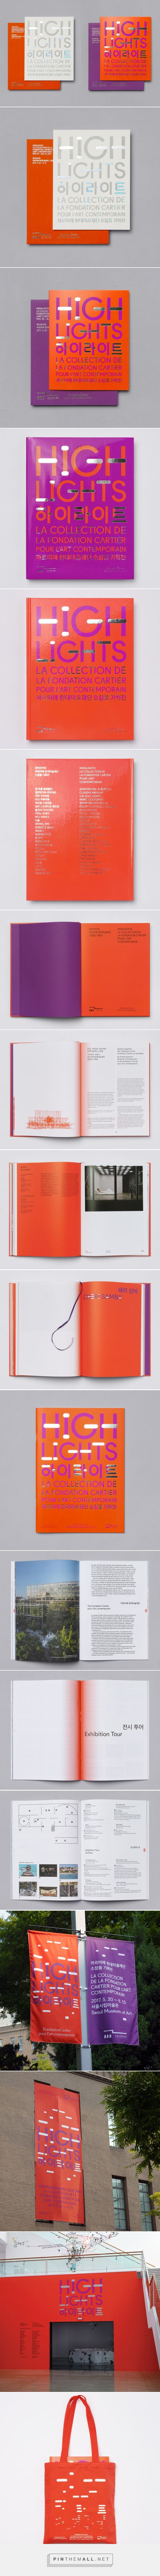 New Visual Identity for Highlights by Studio fnt